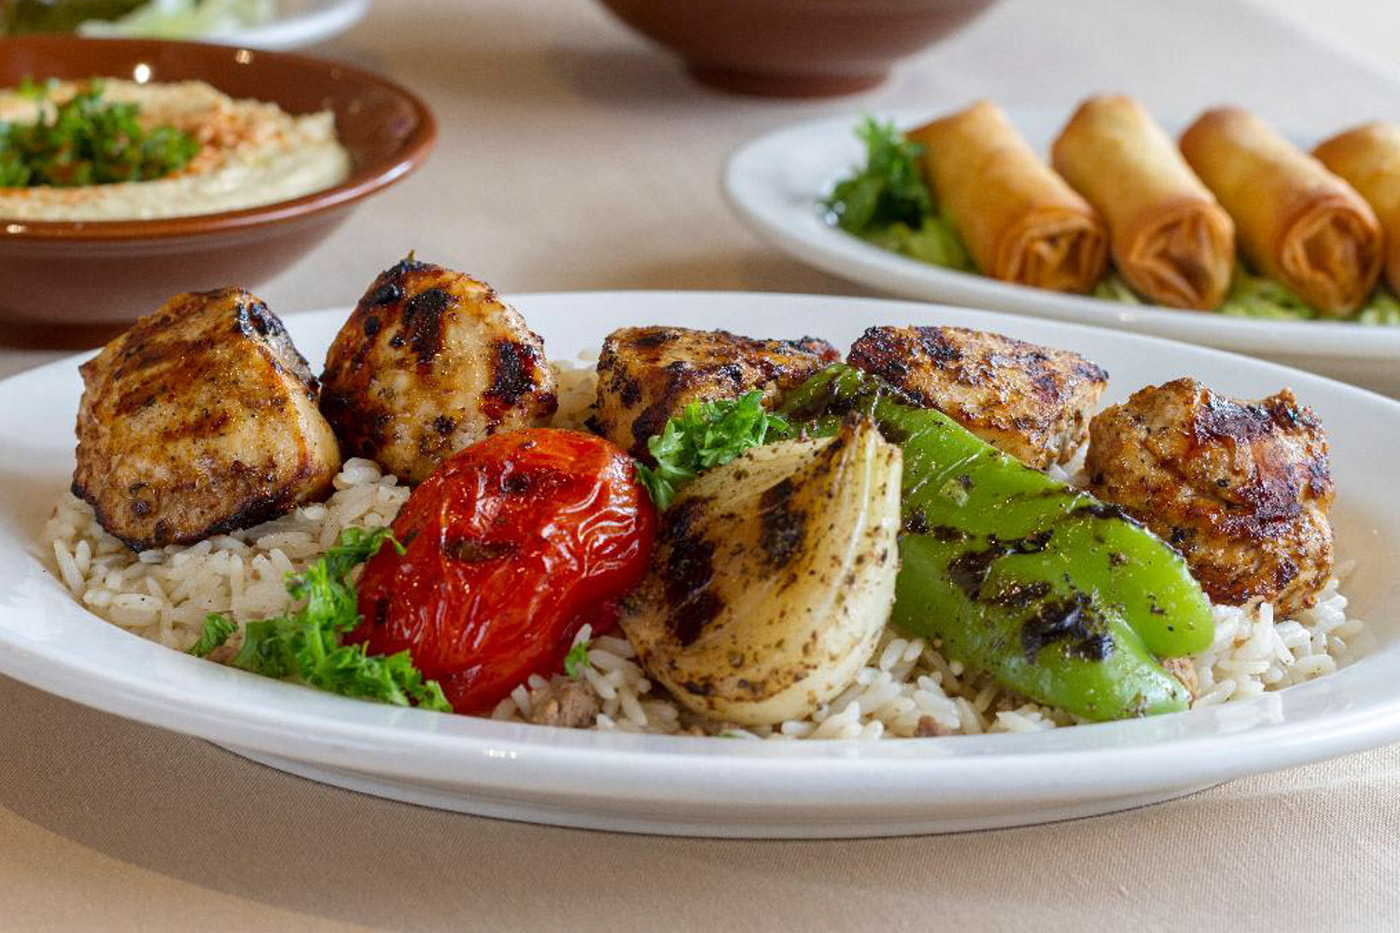 grilled chicken and rice dish